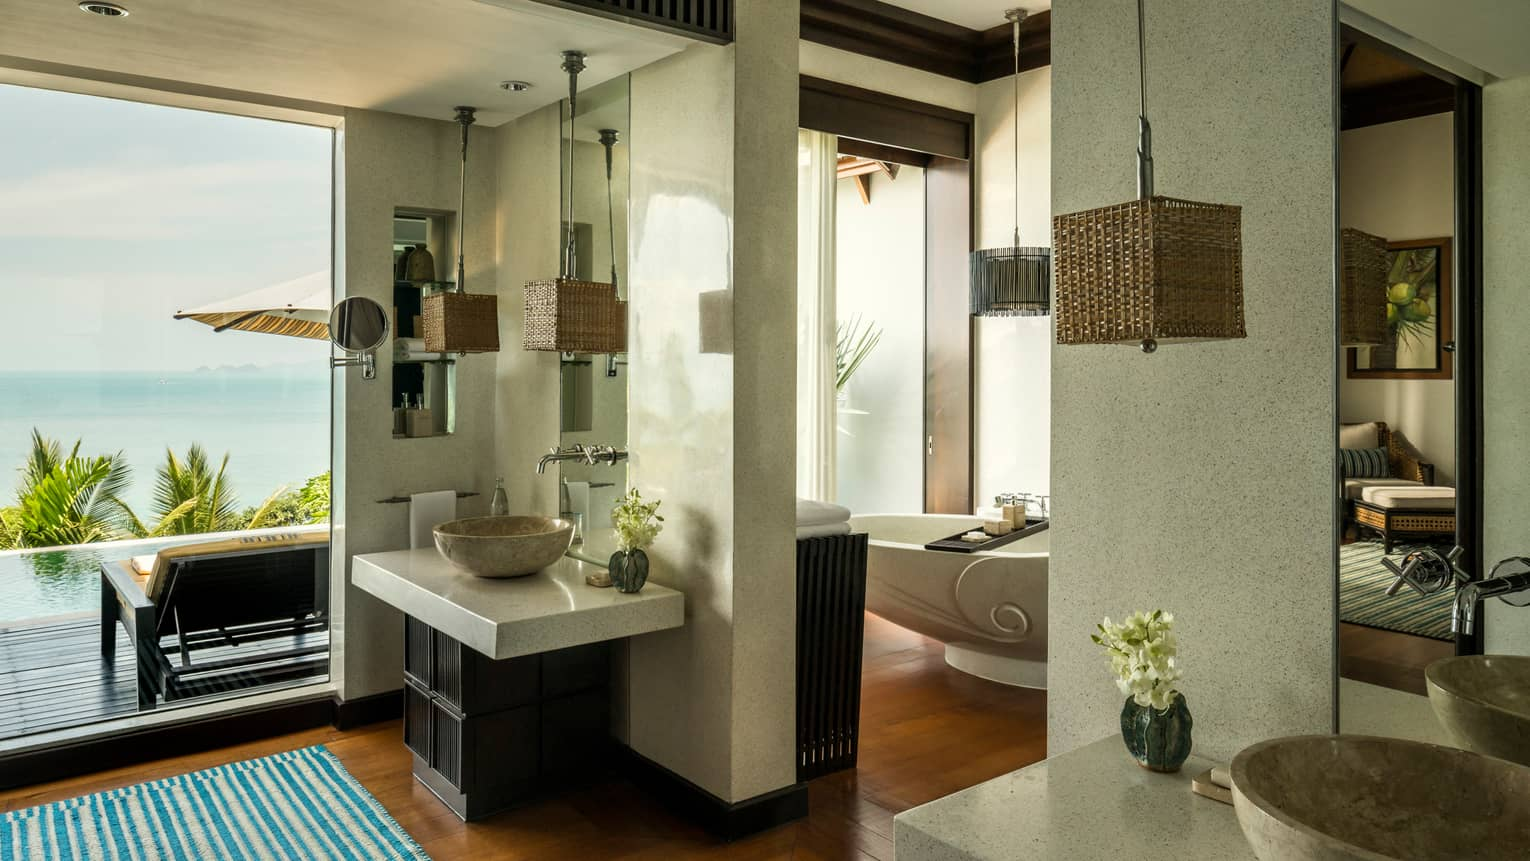 Villa bathroom with double marble sinks, freestanding tub, floor-to-ceiling window